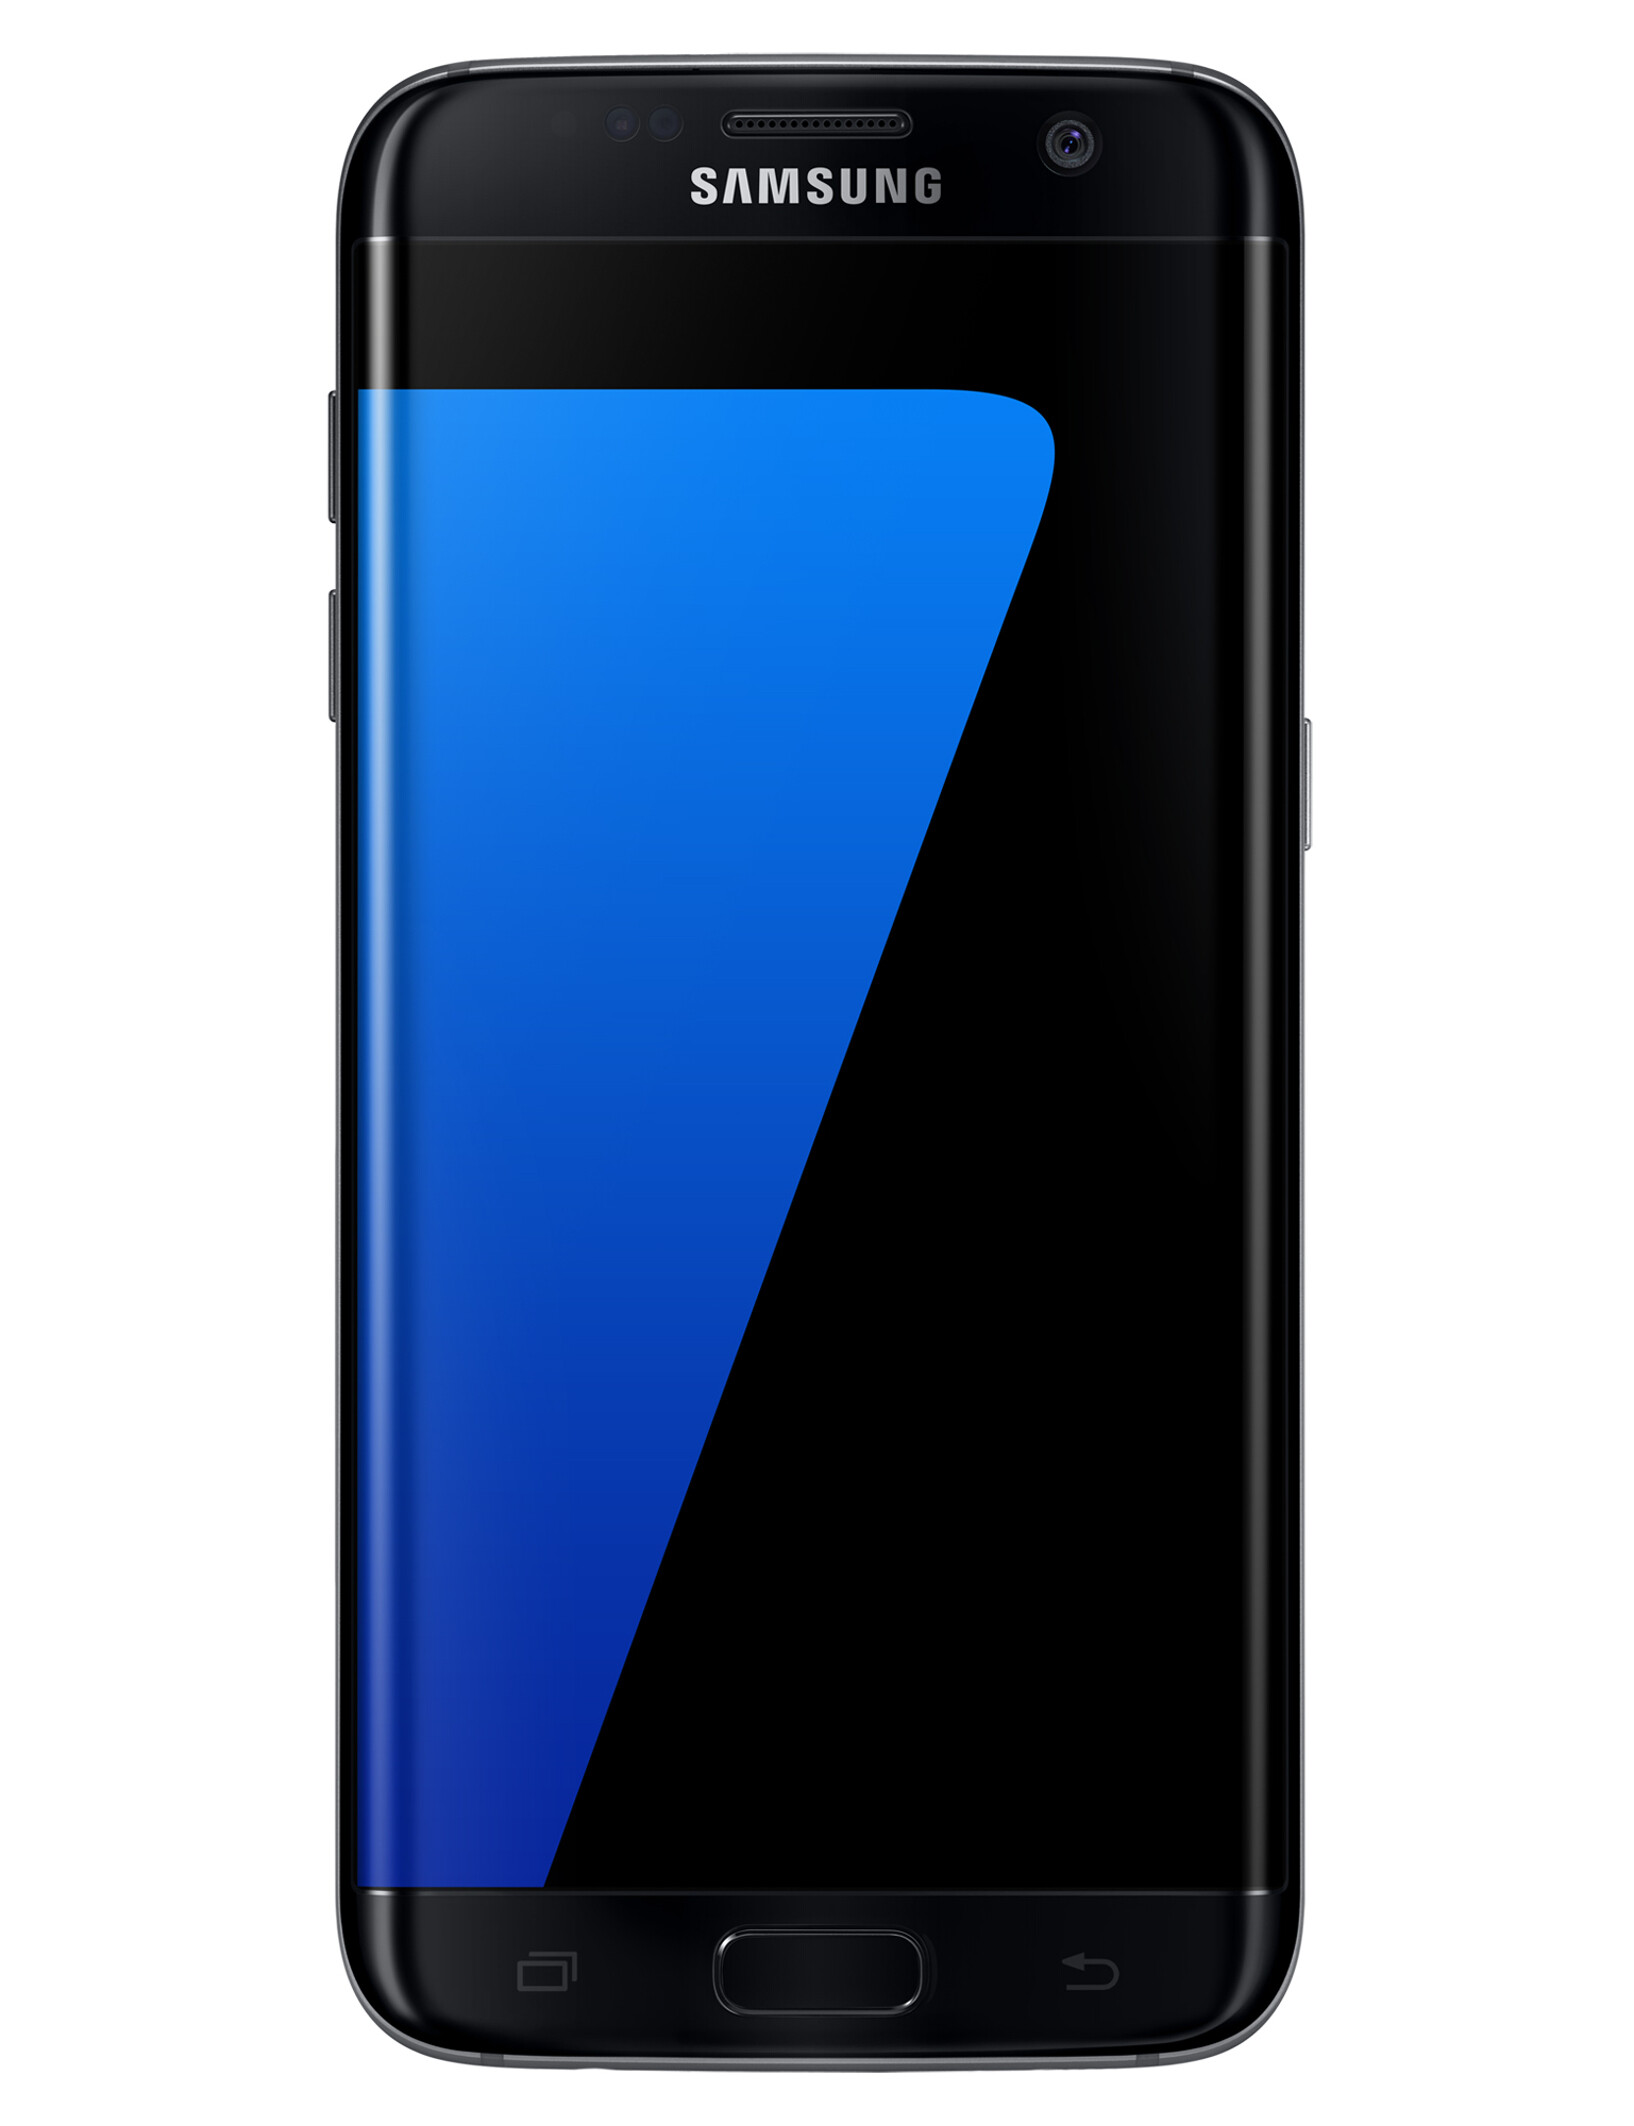 samsung galaxy s7 edge specs. Black Bedroom Furniture Sets. Home Design Ideas